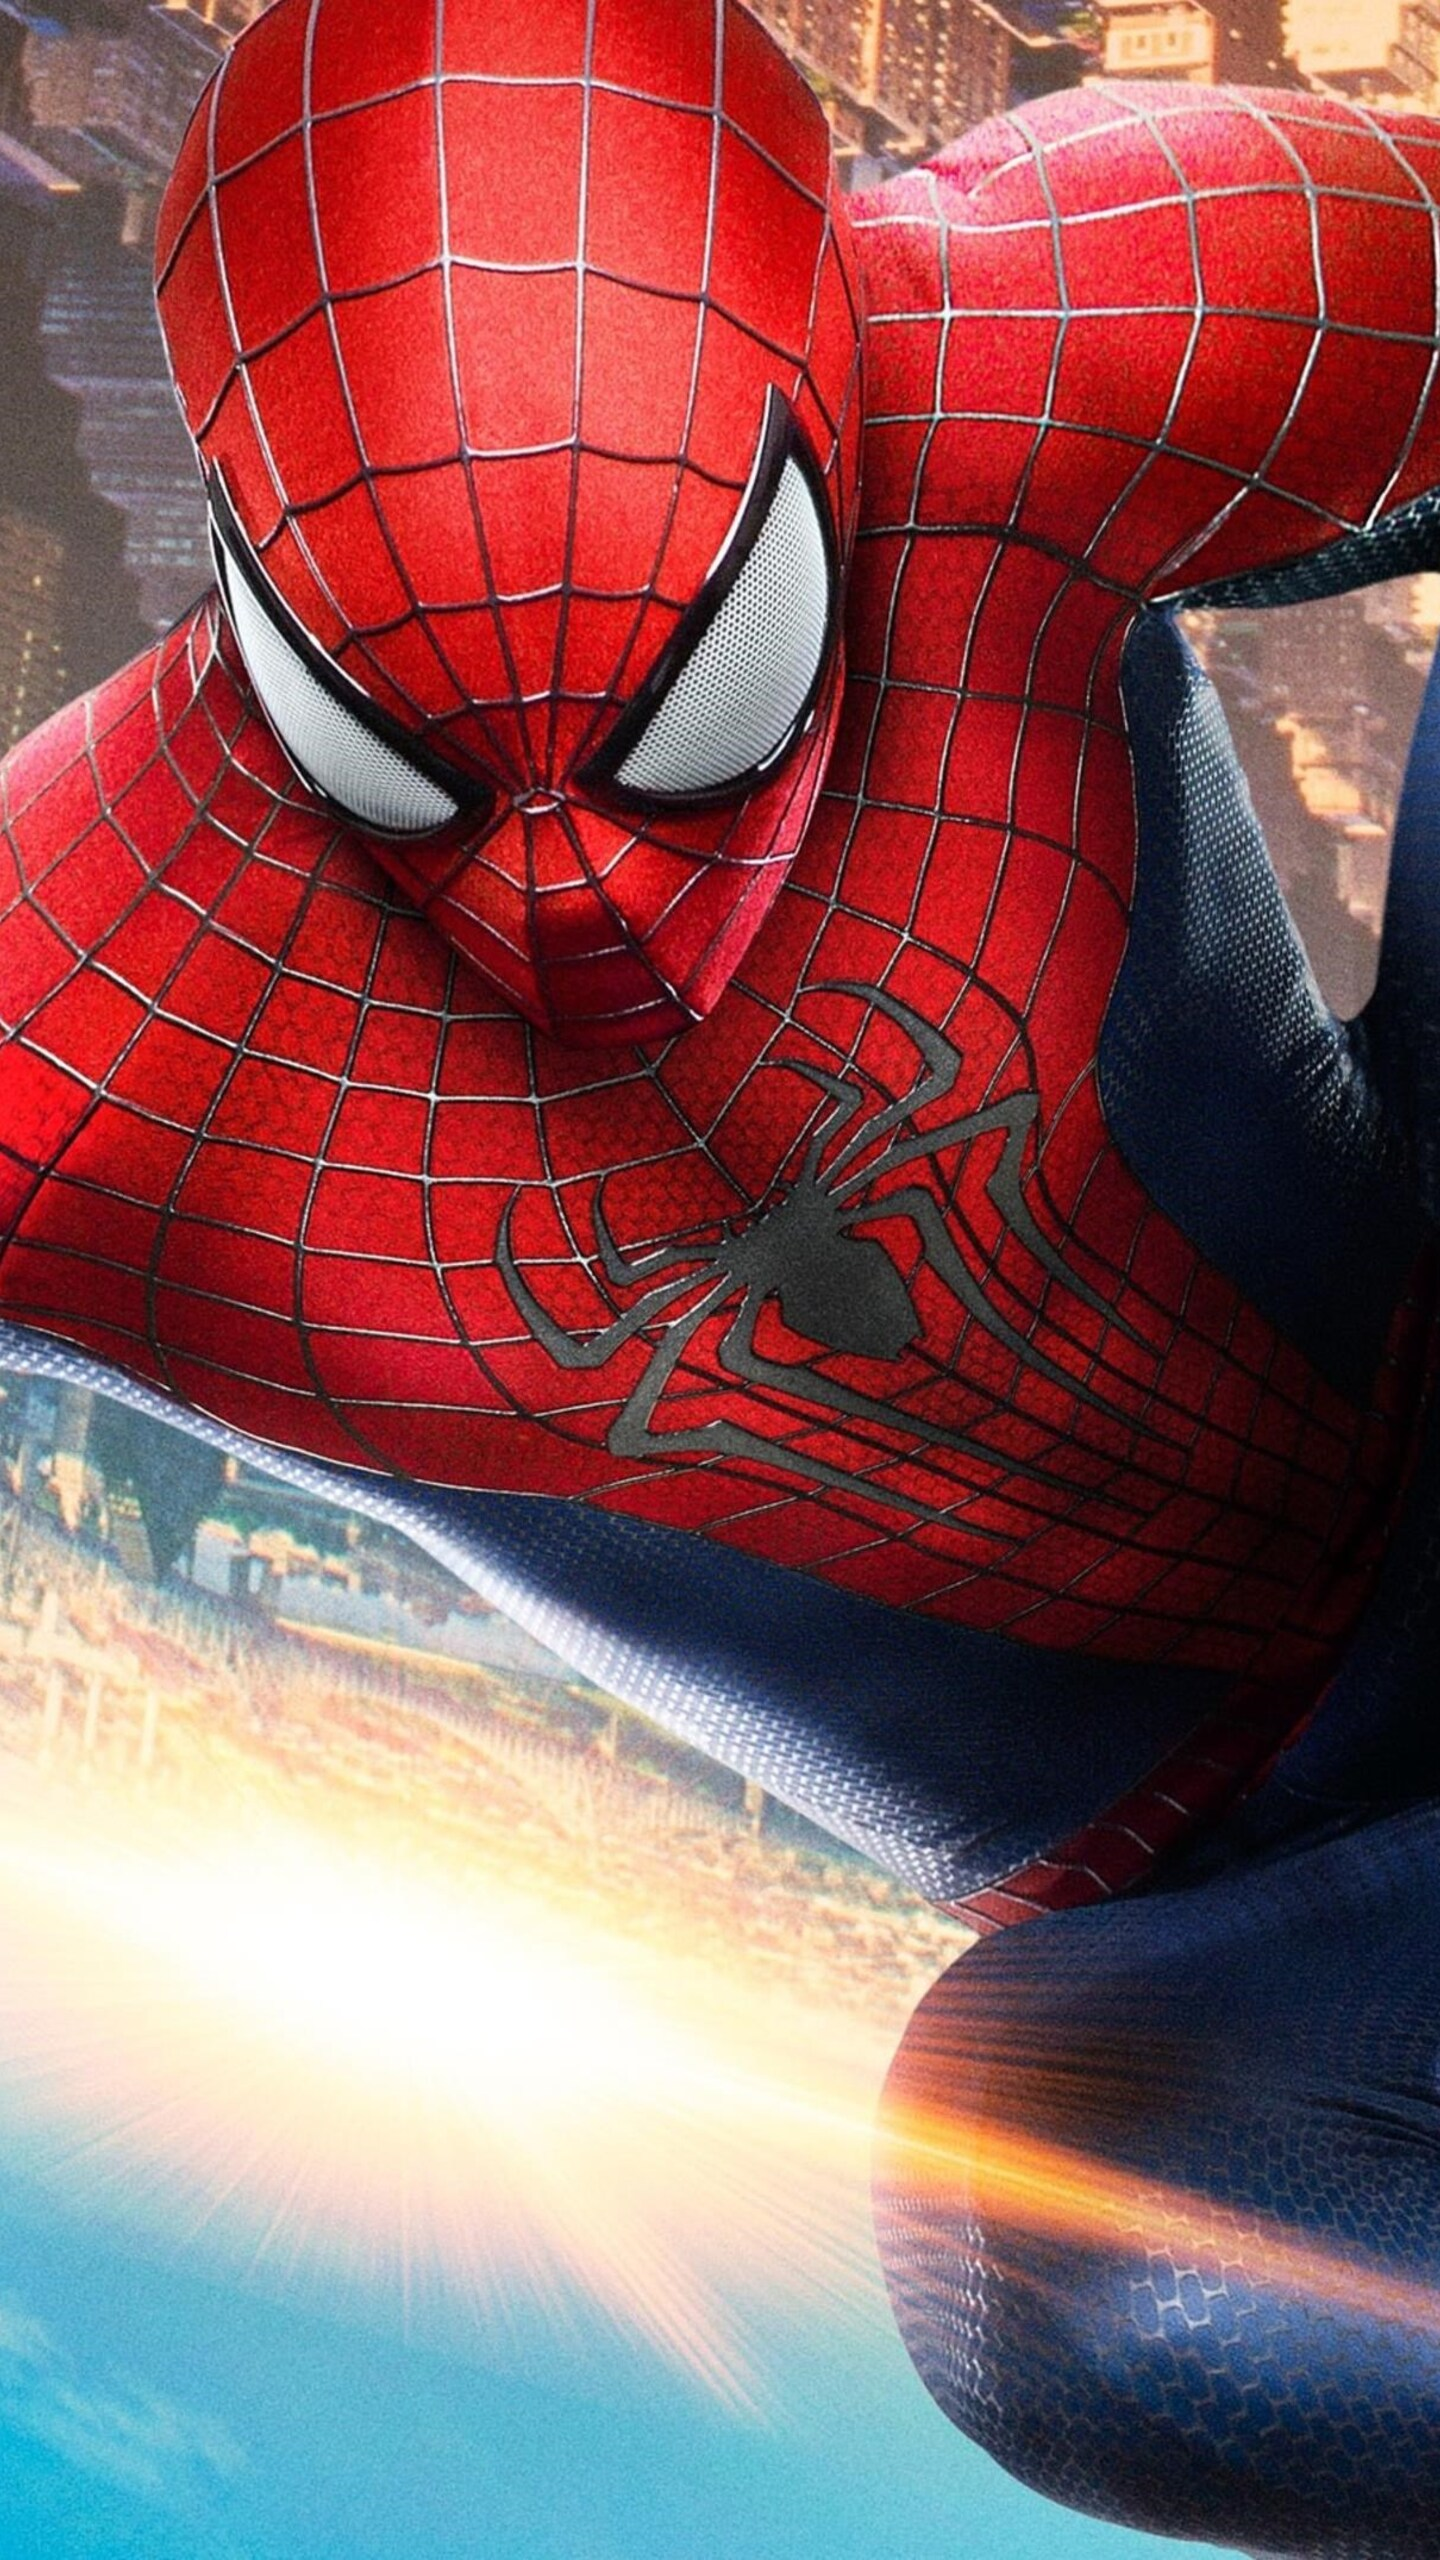 1440x2560 the amazing spider man 2 samsung galaxy s6 s7 - Spider hd images download ...